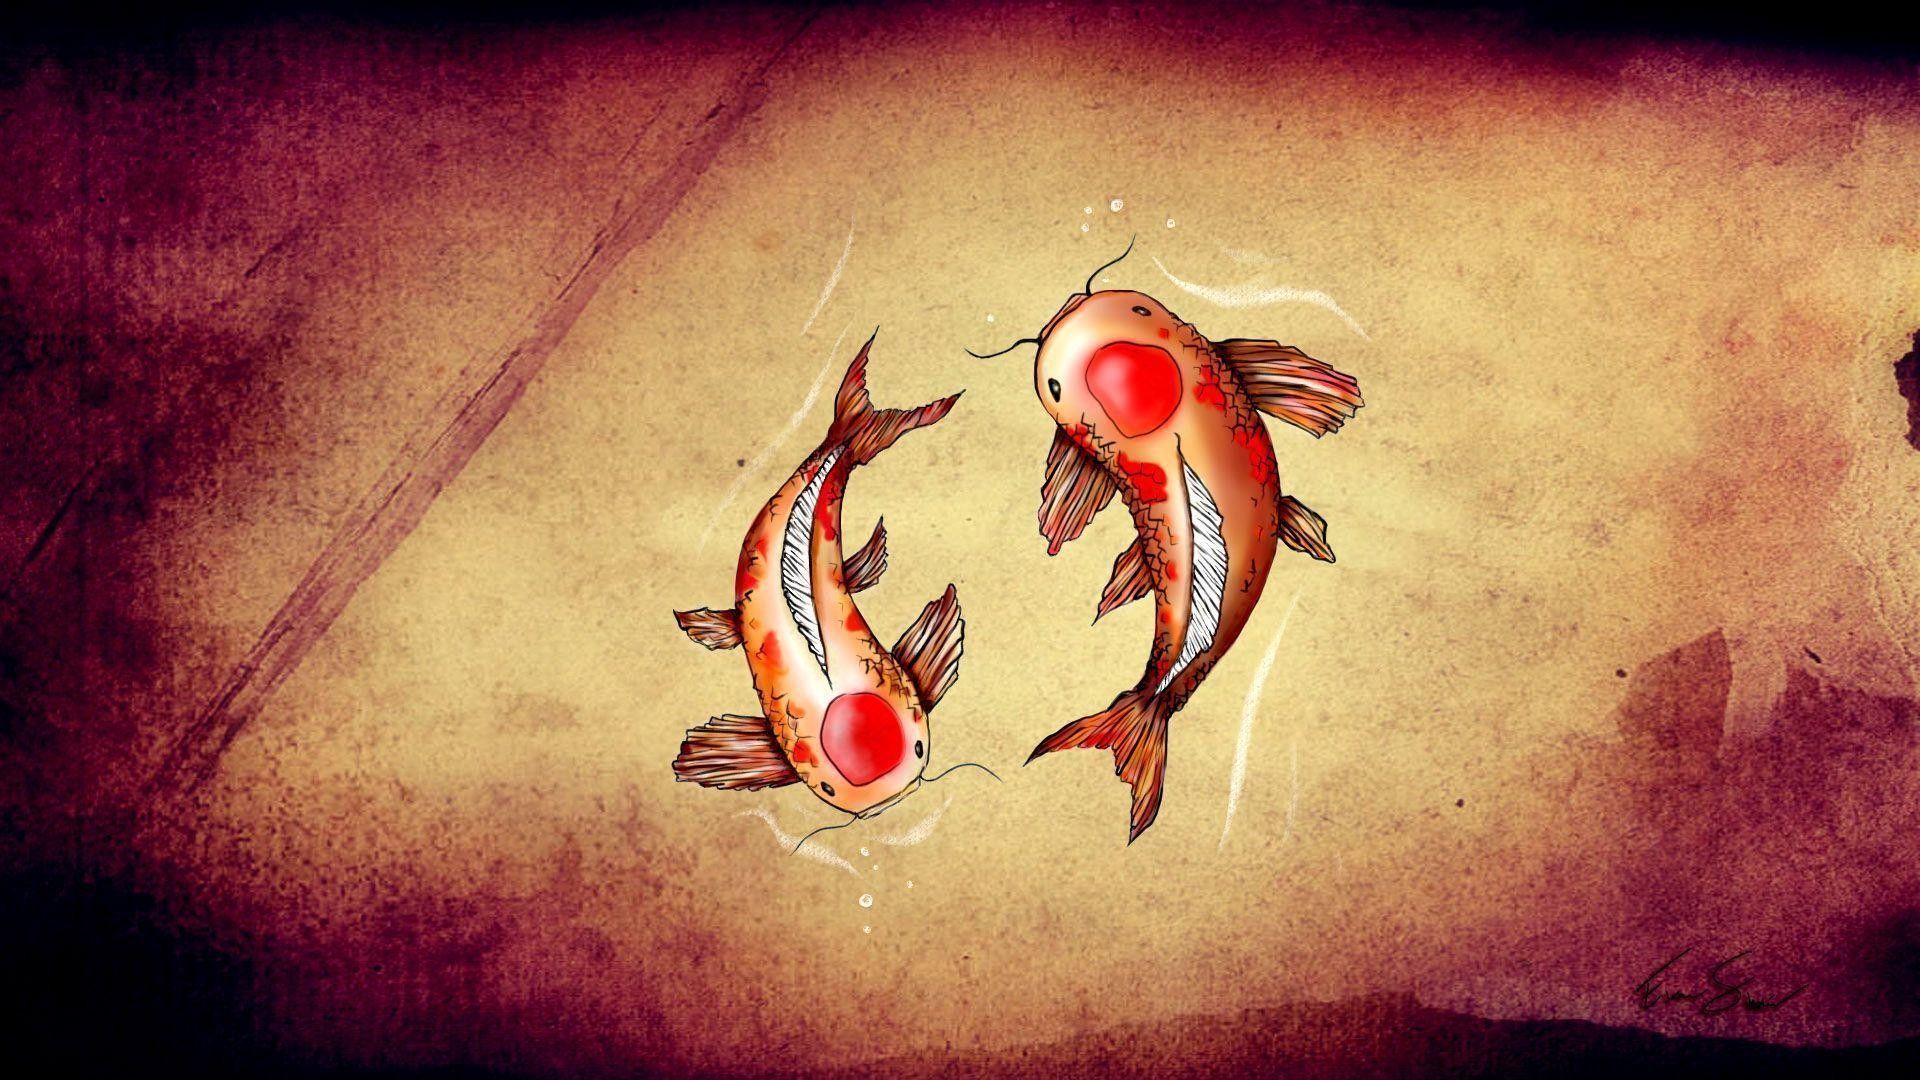 1920x1080 Koi Fish Wallpaper 129483 High Definition Wallpapers | Suwall.